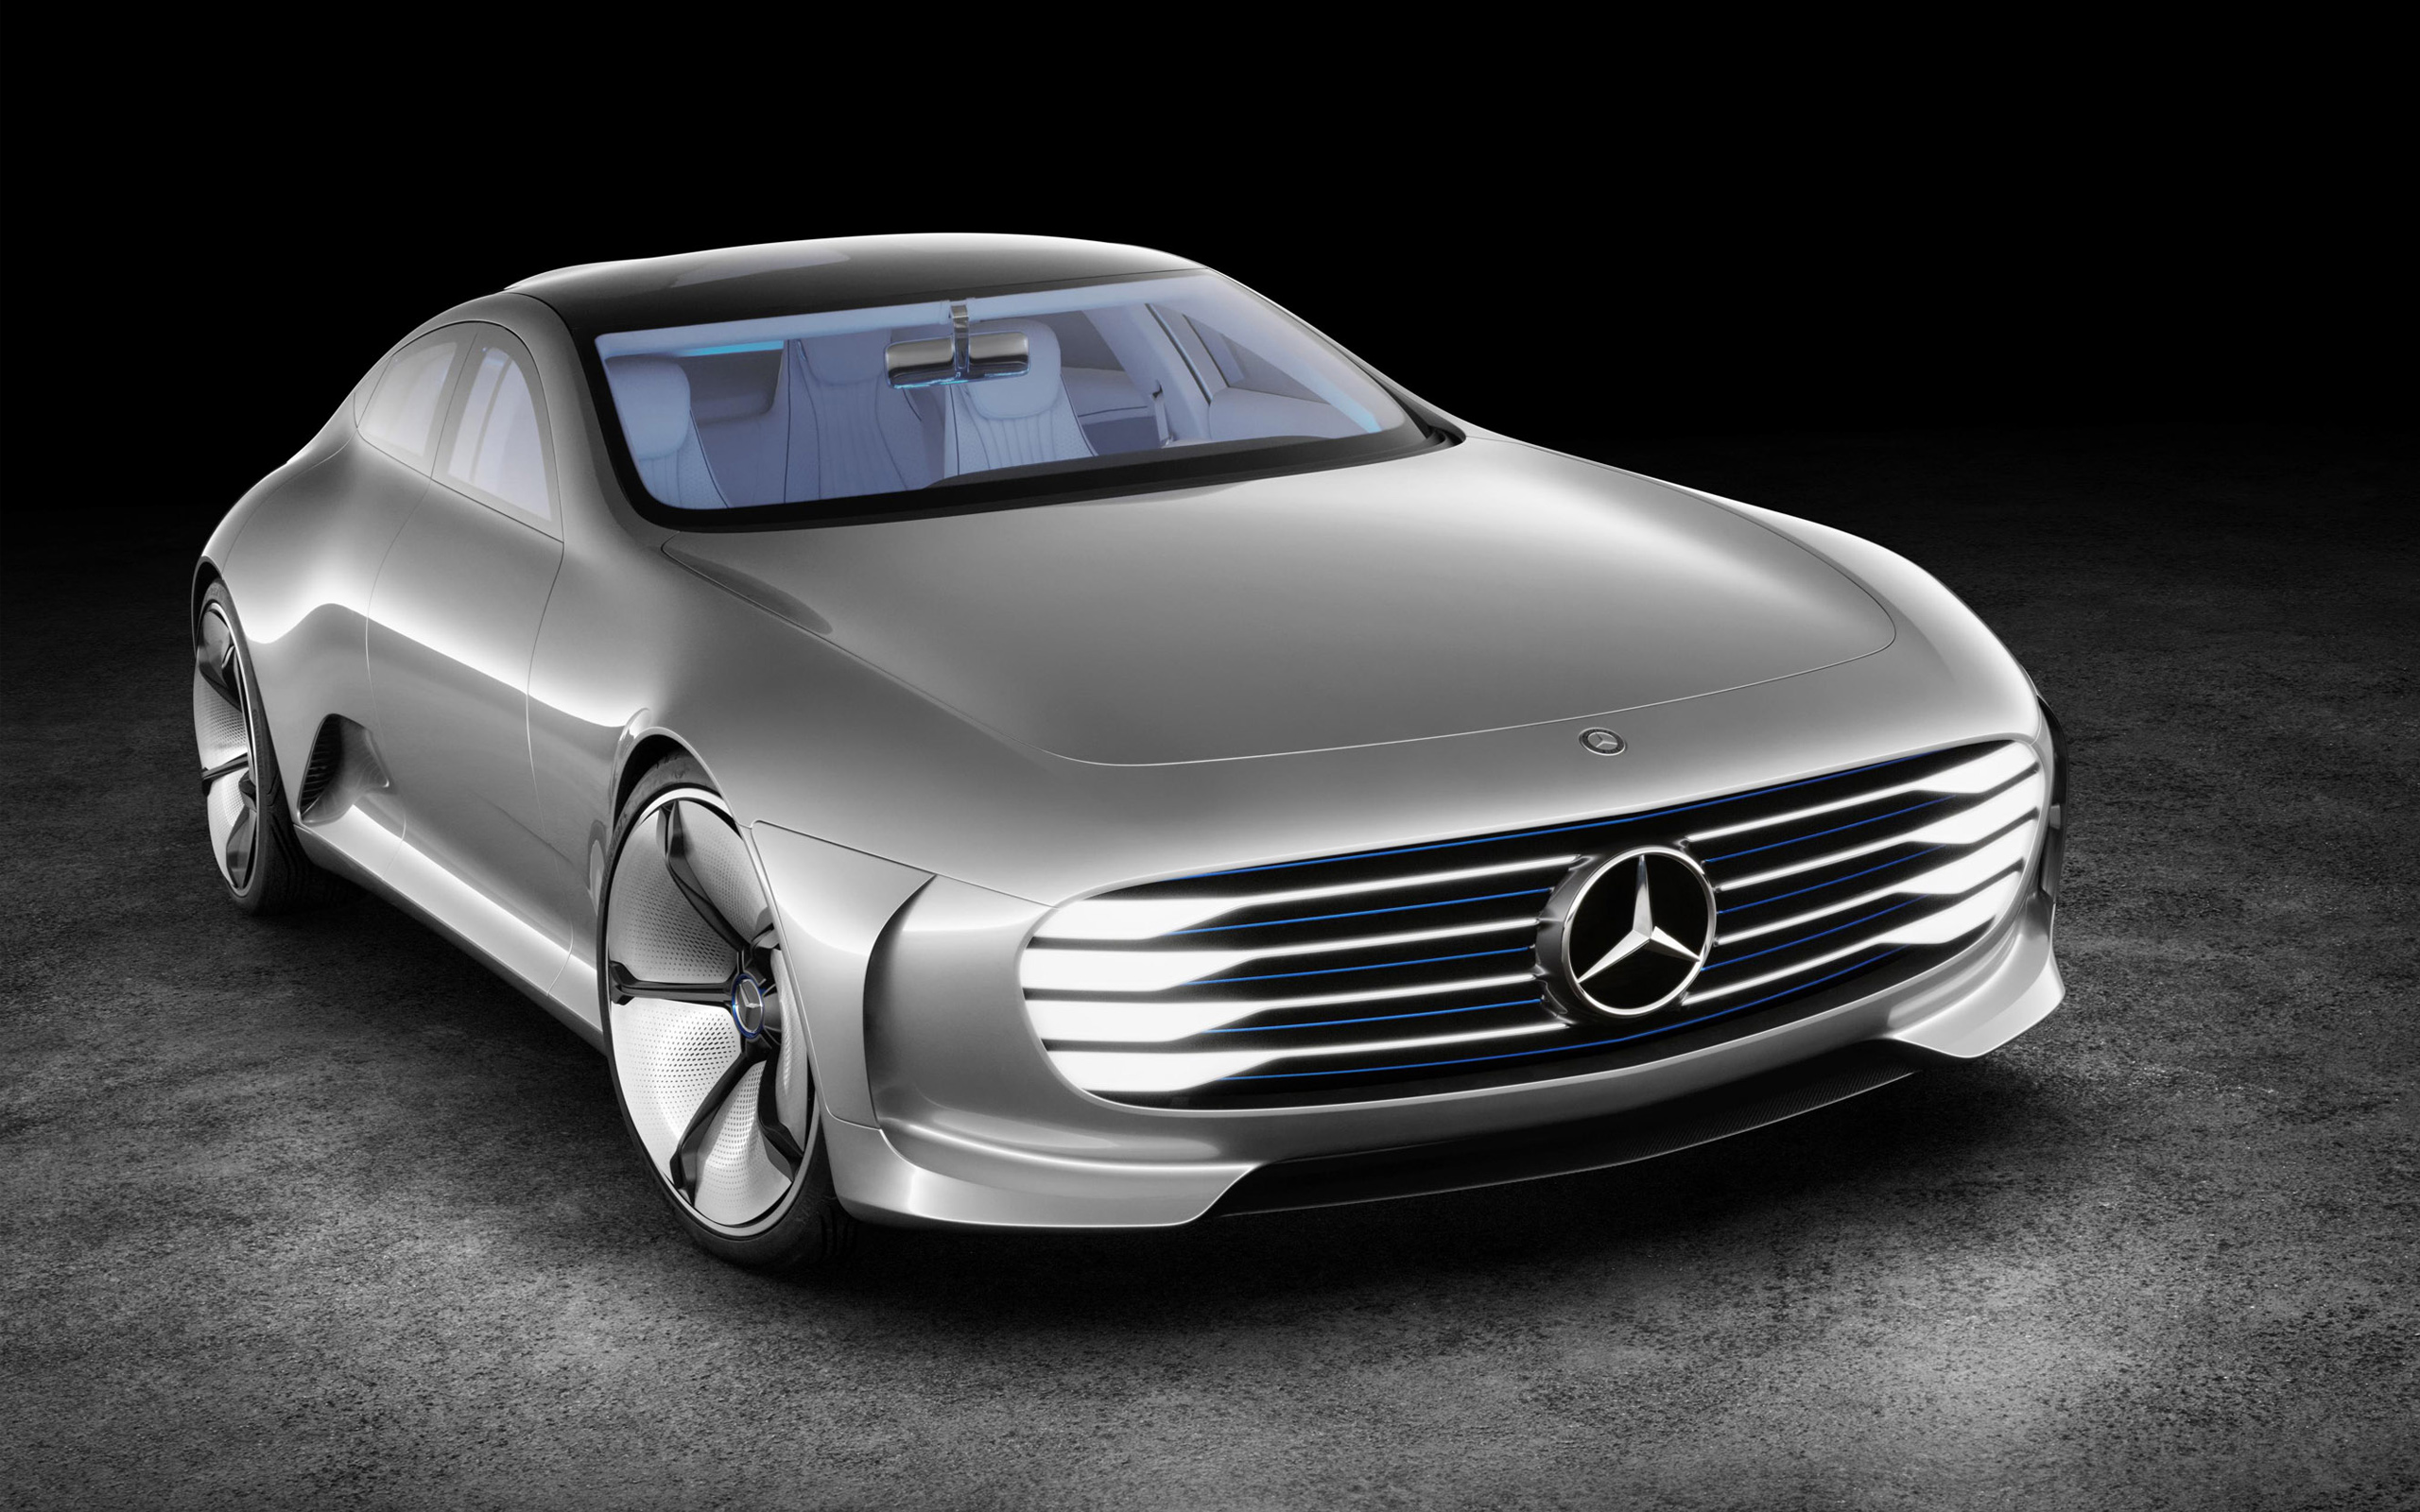 2016 mercedes benz concept iaa 2 wallpaper hd car for Mercedes benz cars